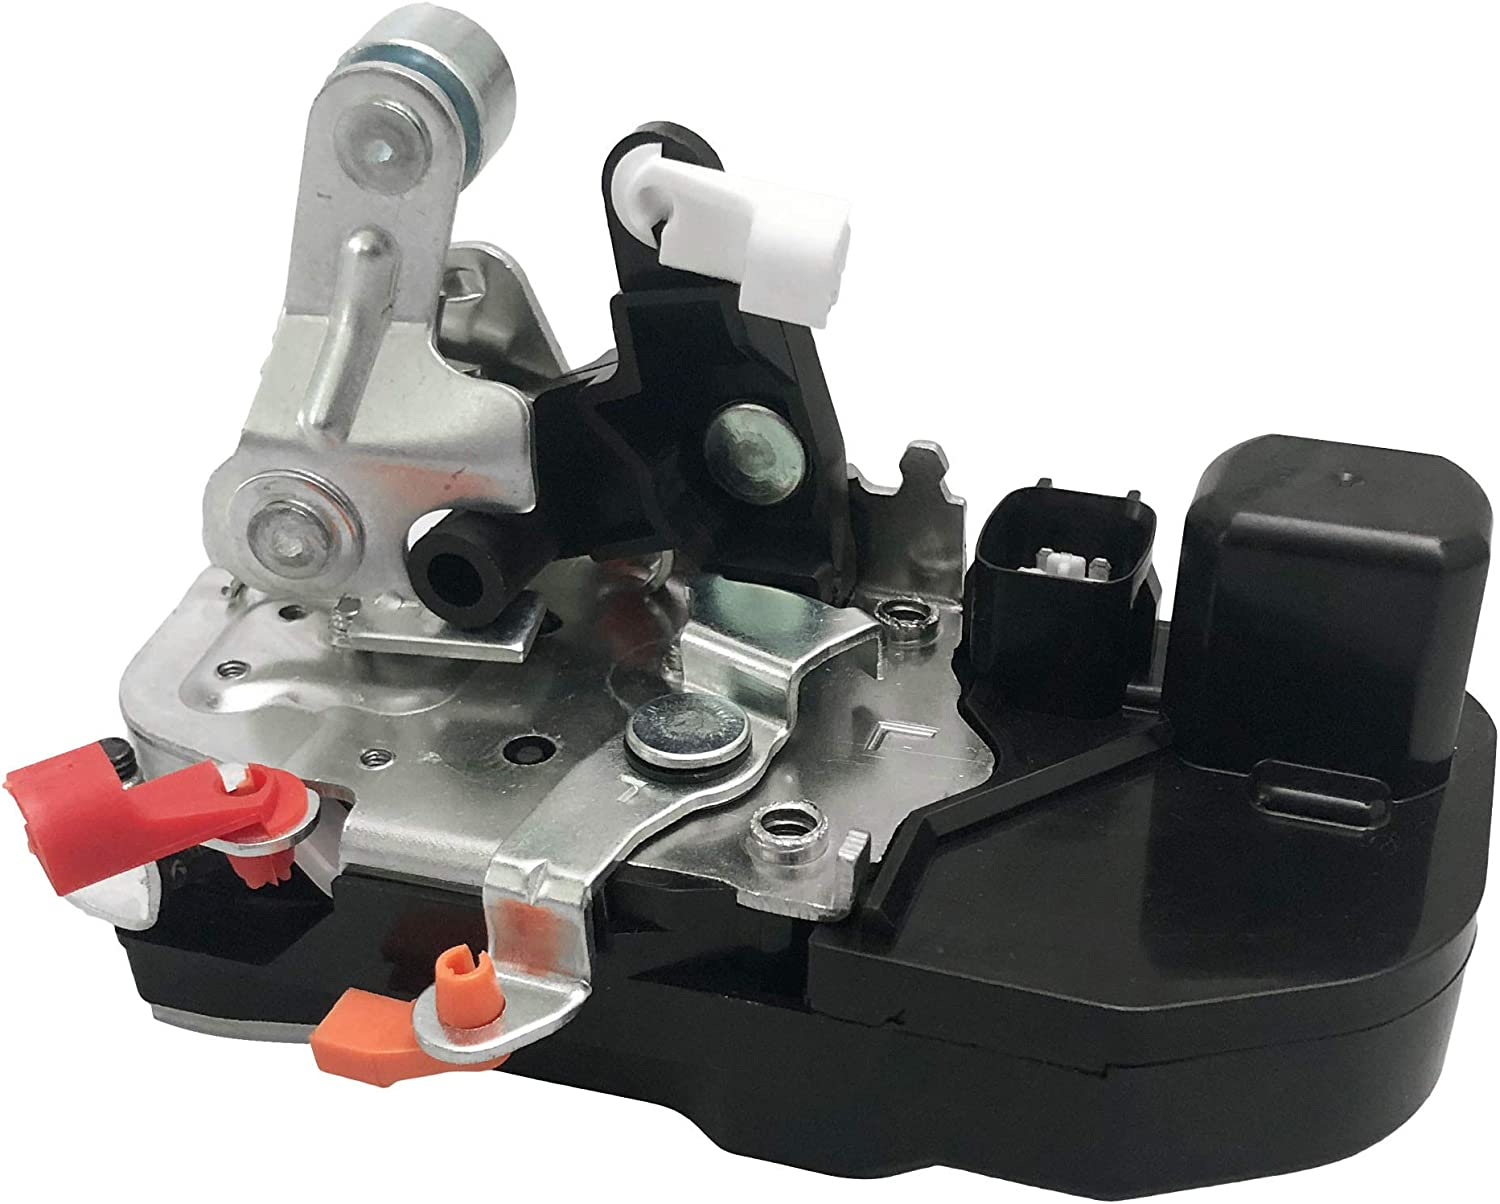 BOXI Front Left Driver Side Door Latch & Lock Actuator Assembly for 2005-2010 Jeep Grand Cherokee (Replaces 931-675 55113367AA 55113367AB 55113367AC 55394937AC 55394937AD 55394937AE)